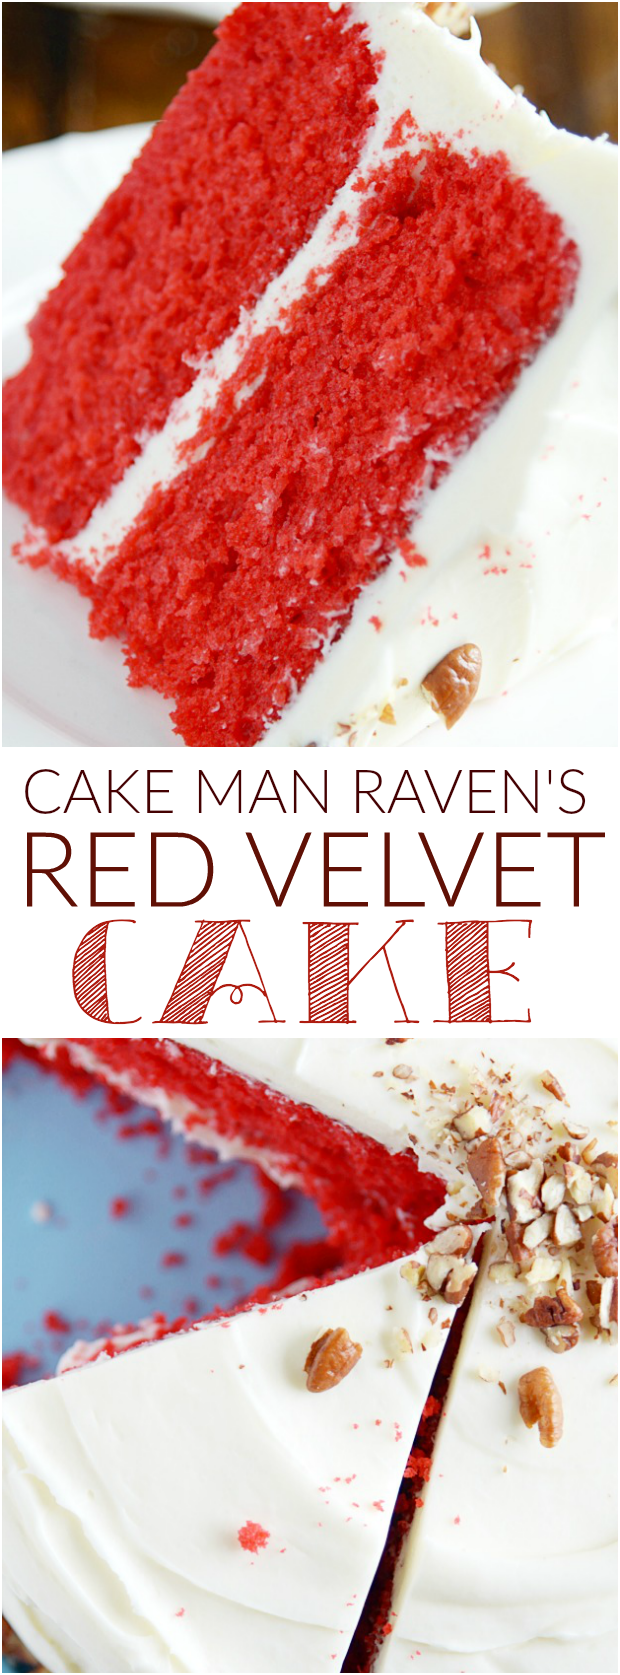 Cake Man Raven s Red Velvet Cake with Cream Cheese Frosting - Something Swanky #creamcheesefrosting